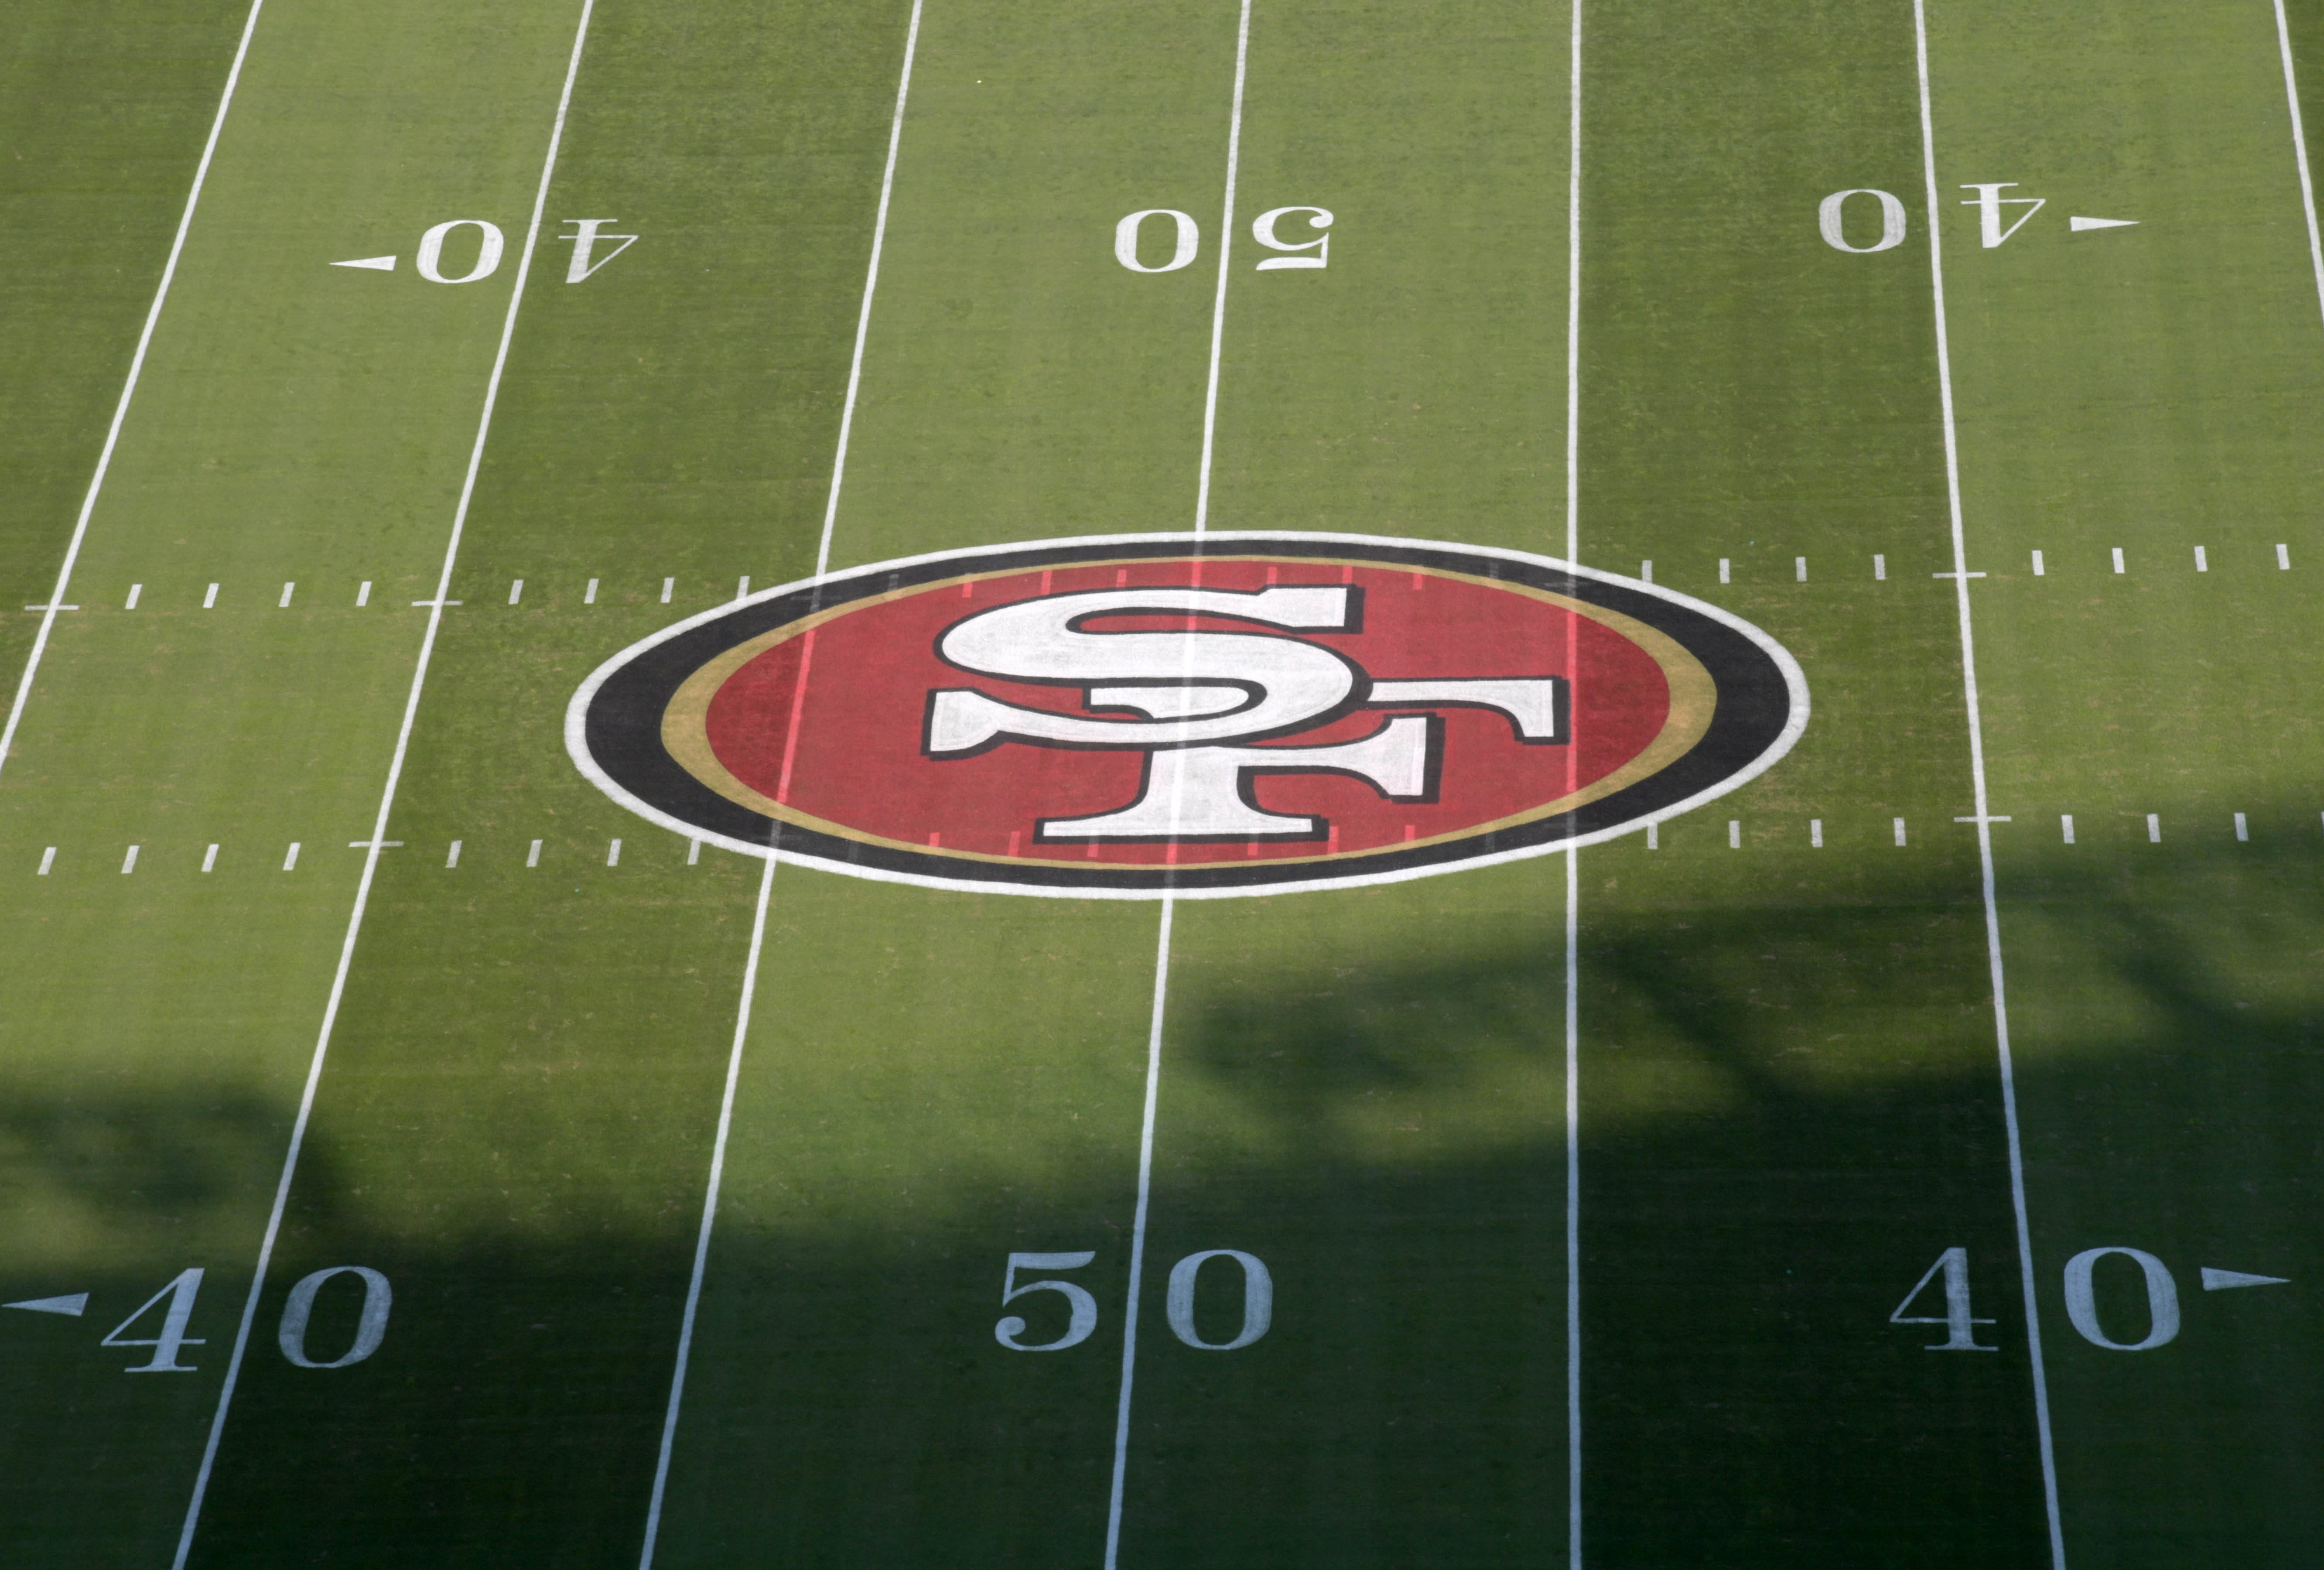 A general view of the San Francisco 49ers logo at midfield at Levi's Stadium.